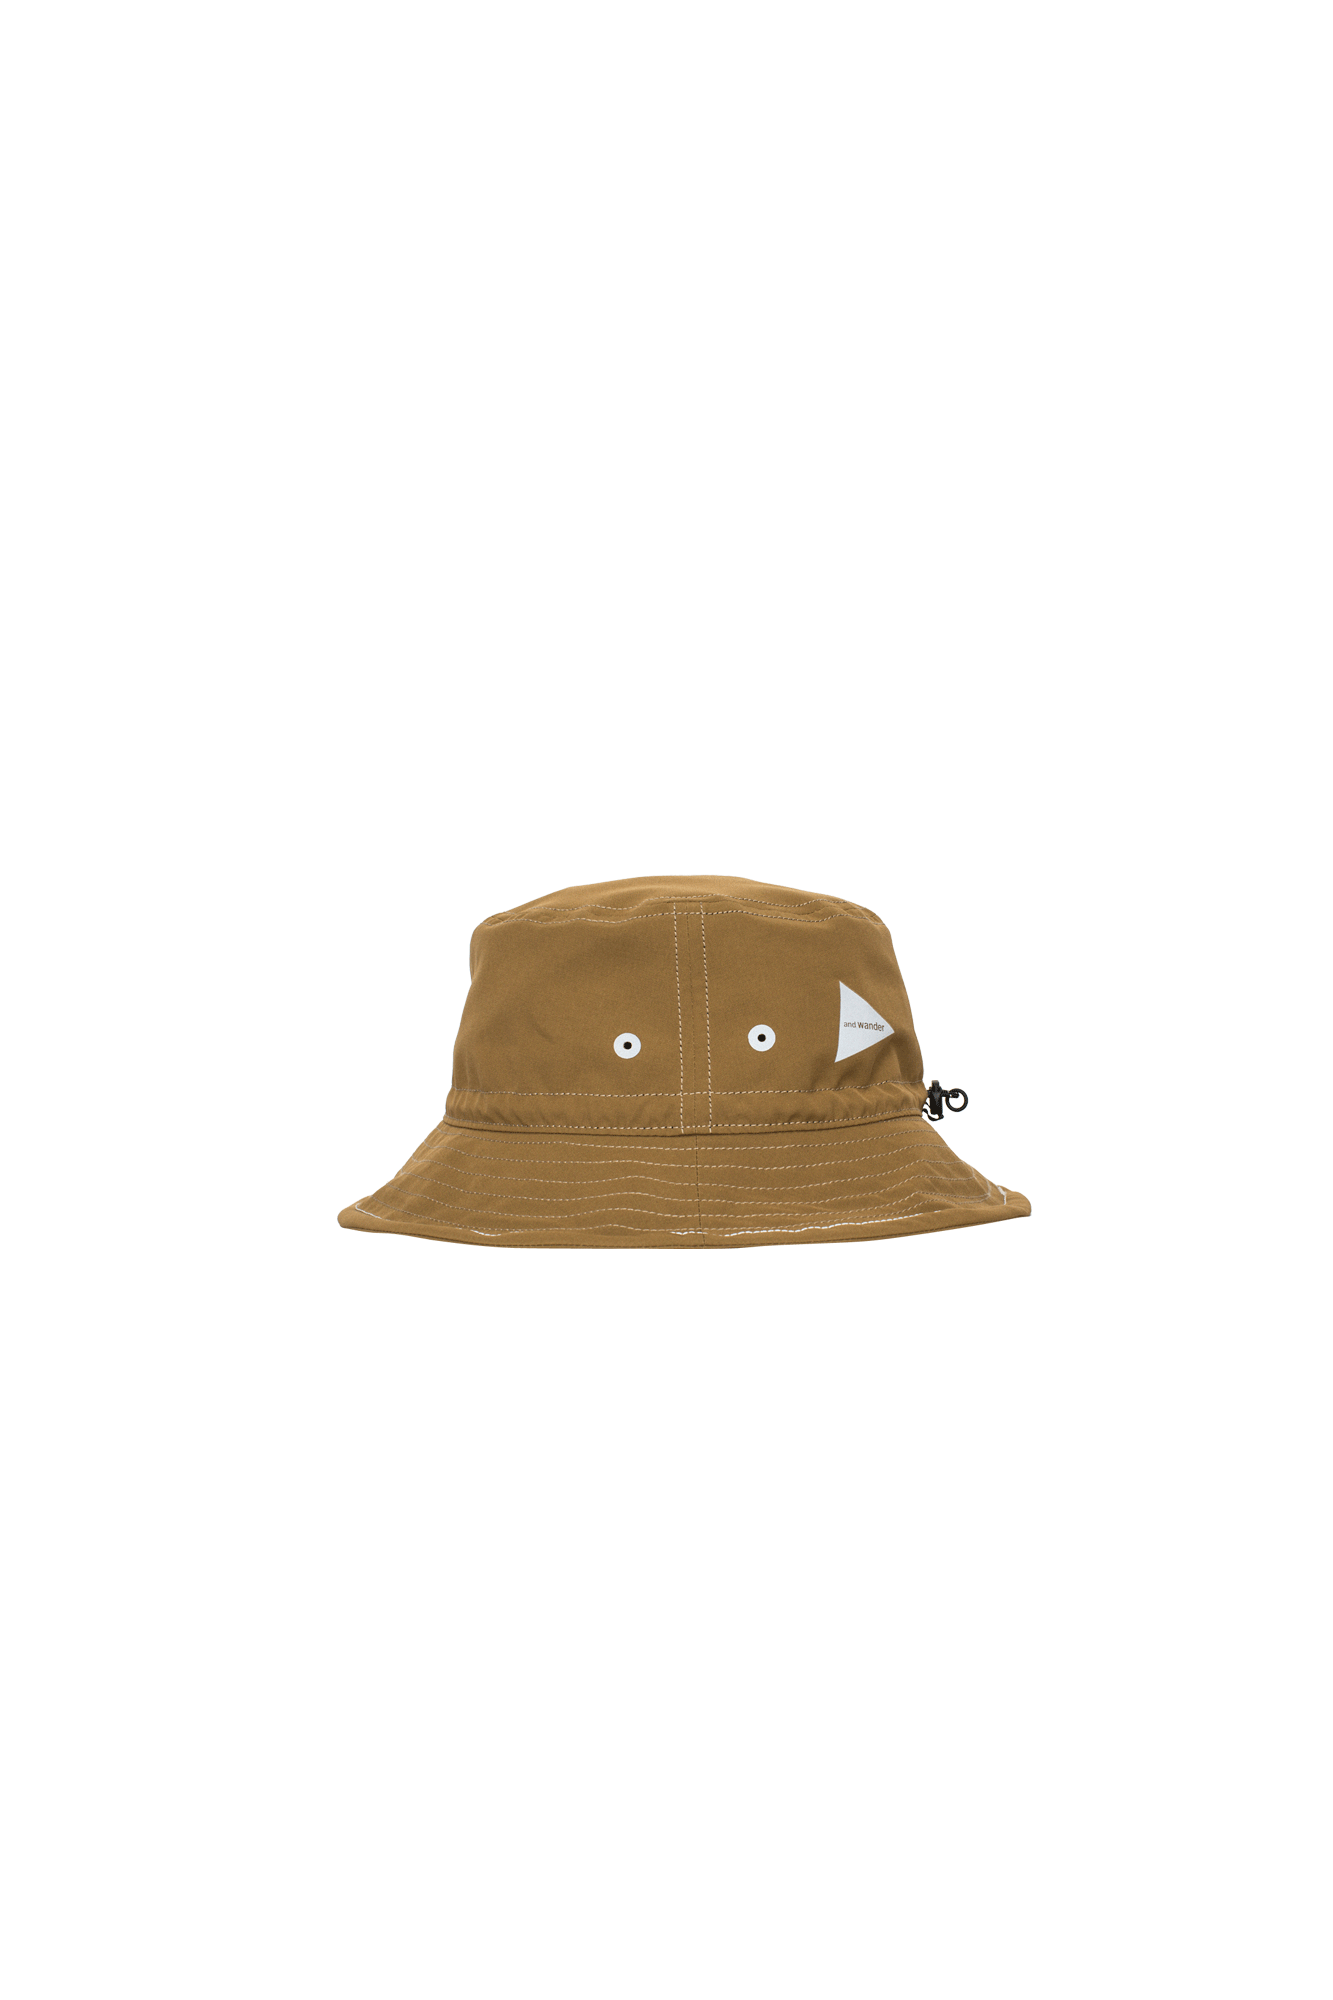 And Wander Hats PE/CO Hat Beige 5741986539#000#040#OS - One Block Down